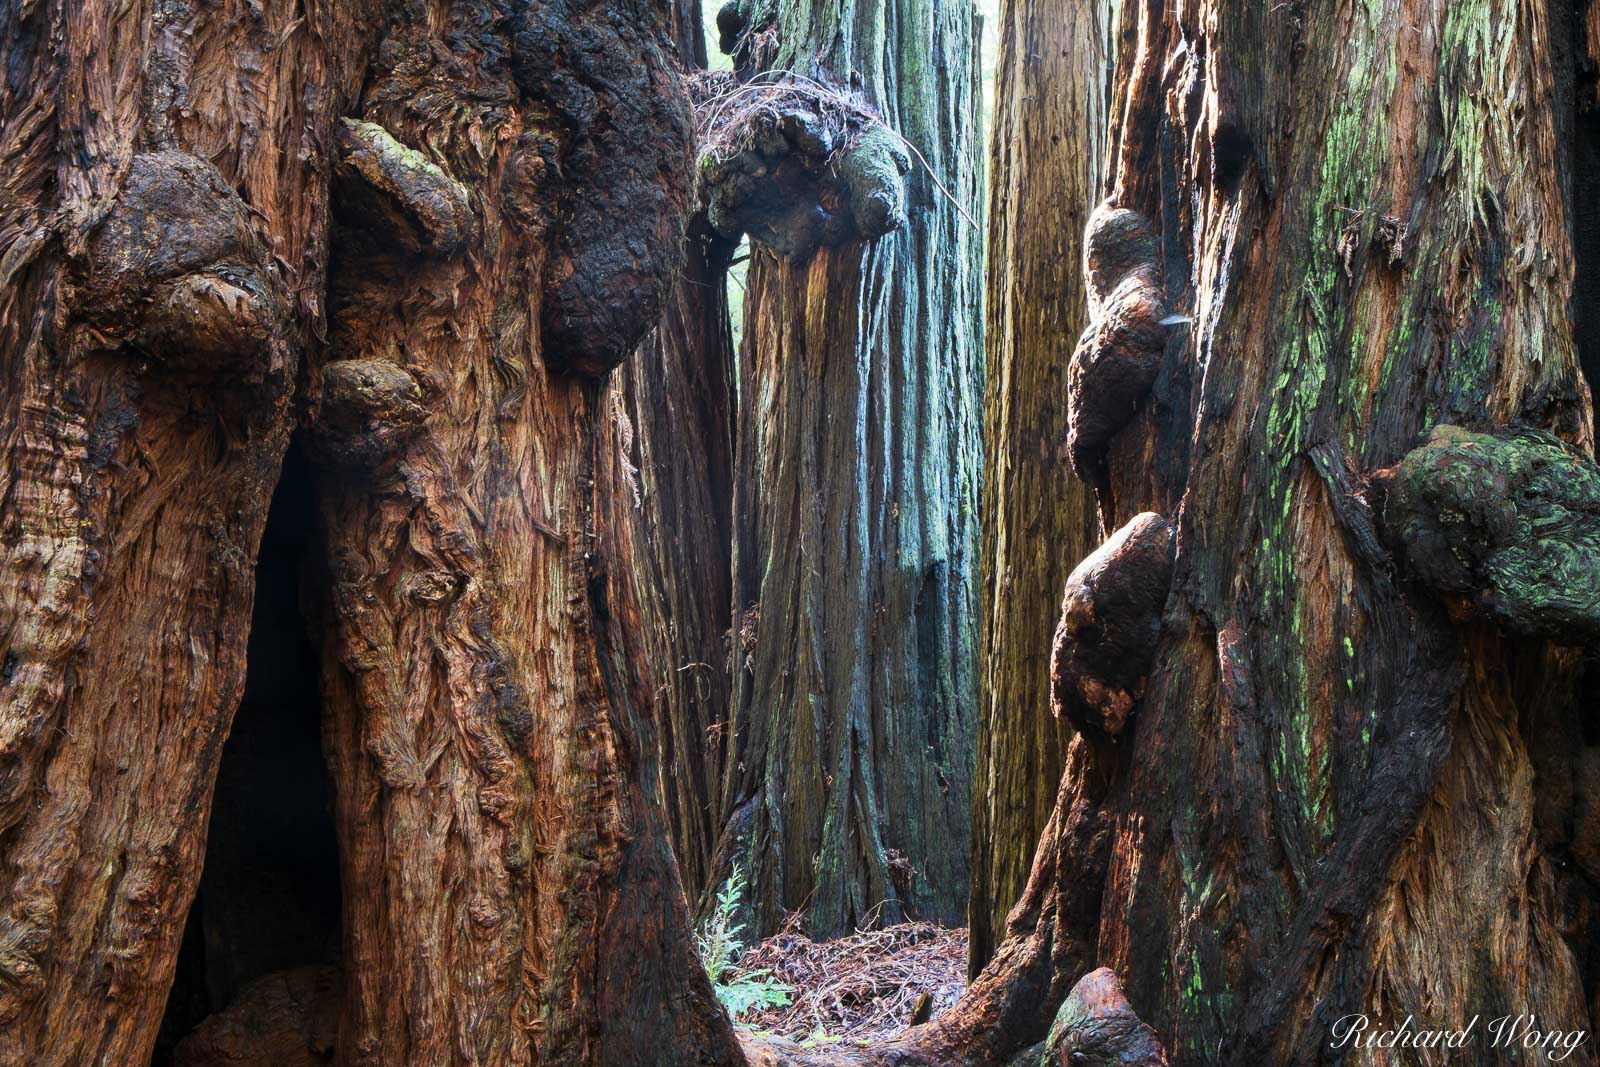 Burls on Old-Growth Coast Redwood Trees, Muir Woods National Monument, California, photo, photo